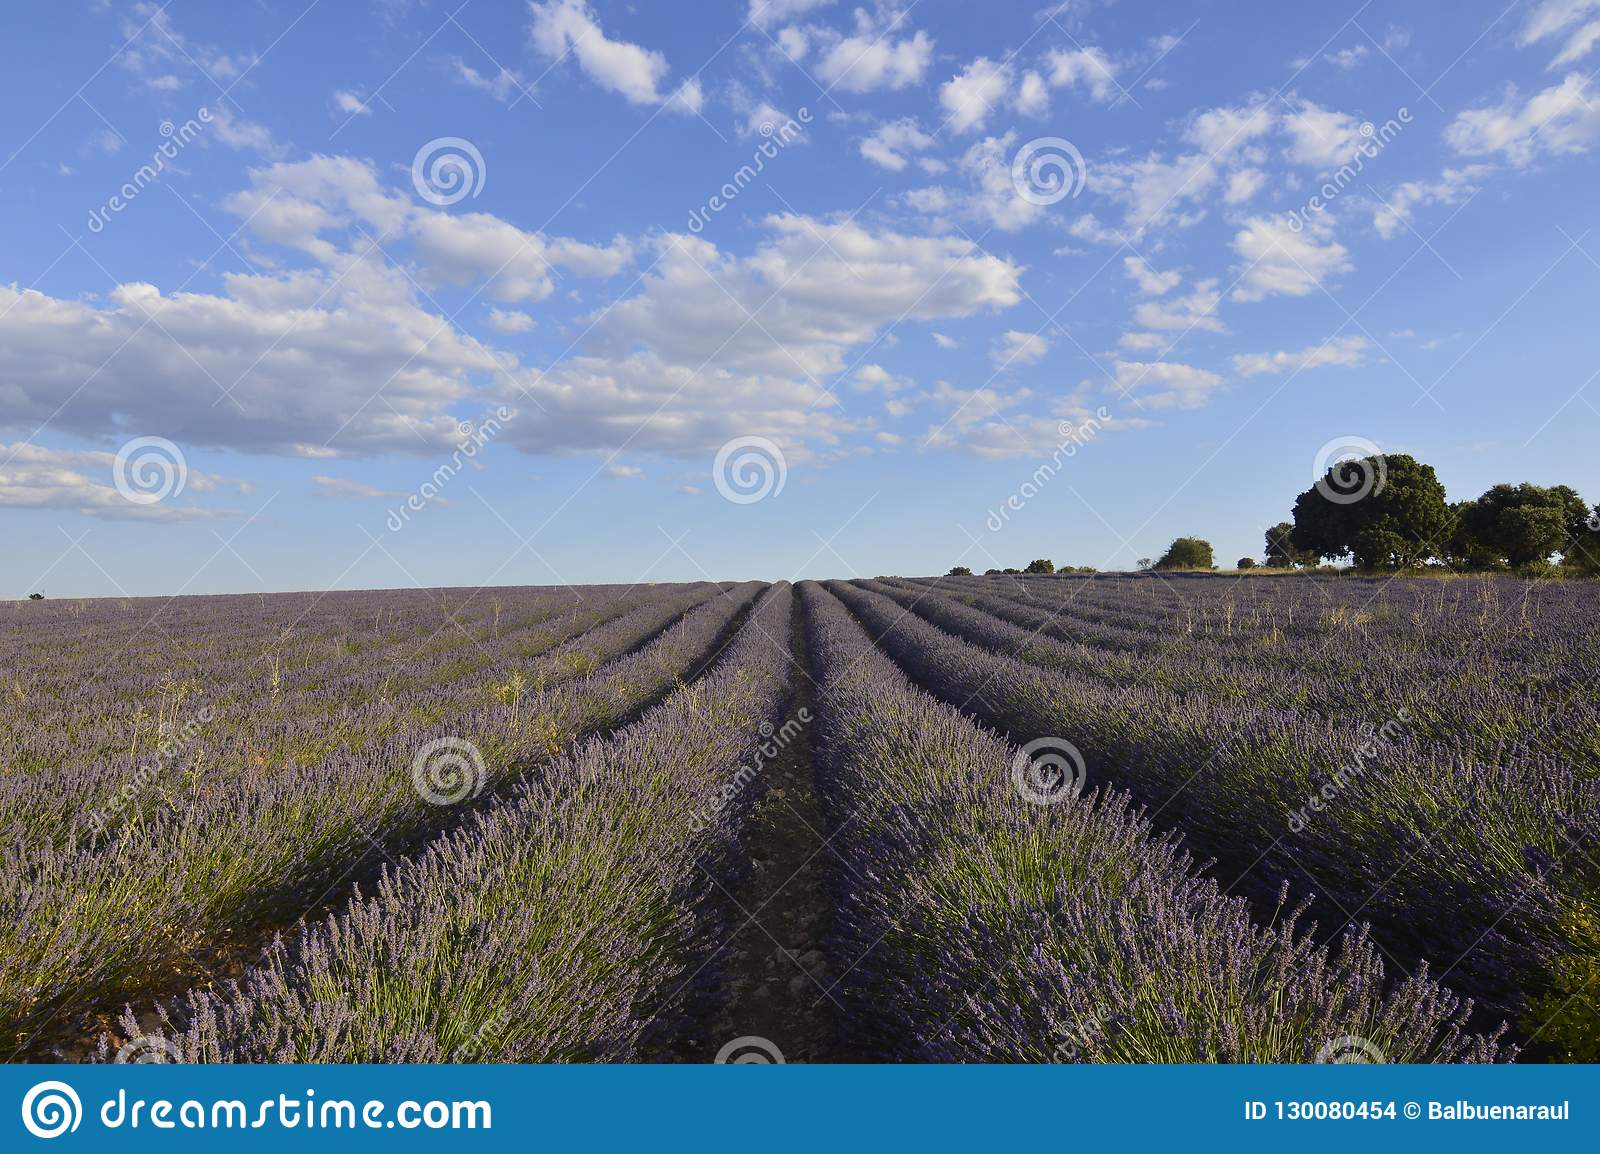 Holm Oak Forest Next To Rows Of Lavender With A Sky With Lovely Clouds In A Brihuega Meadow. Nature, Plants, Odors, Landscapes